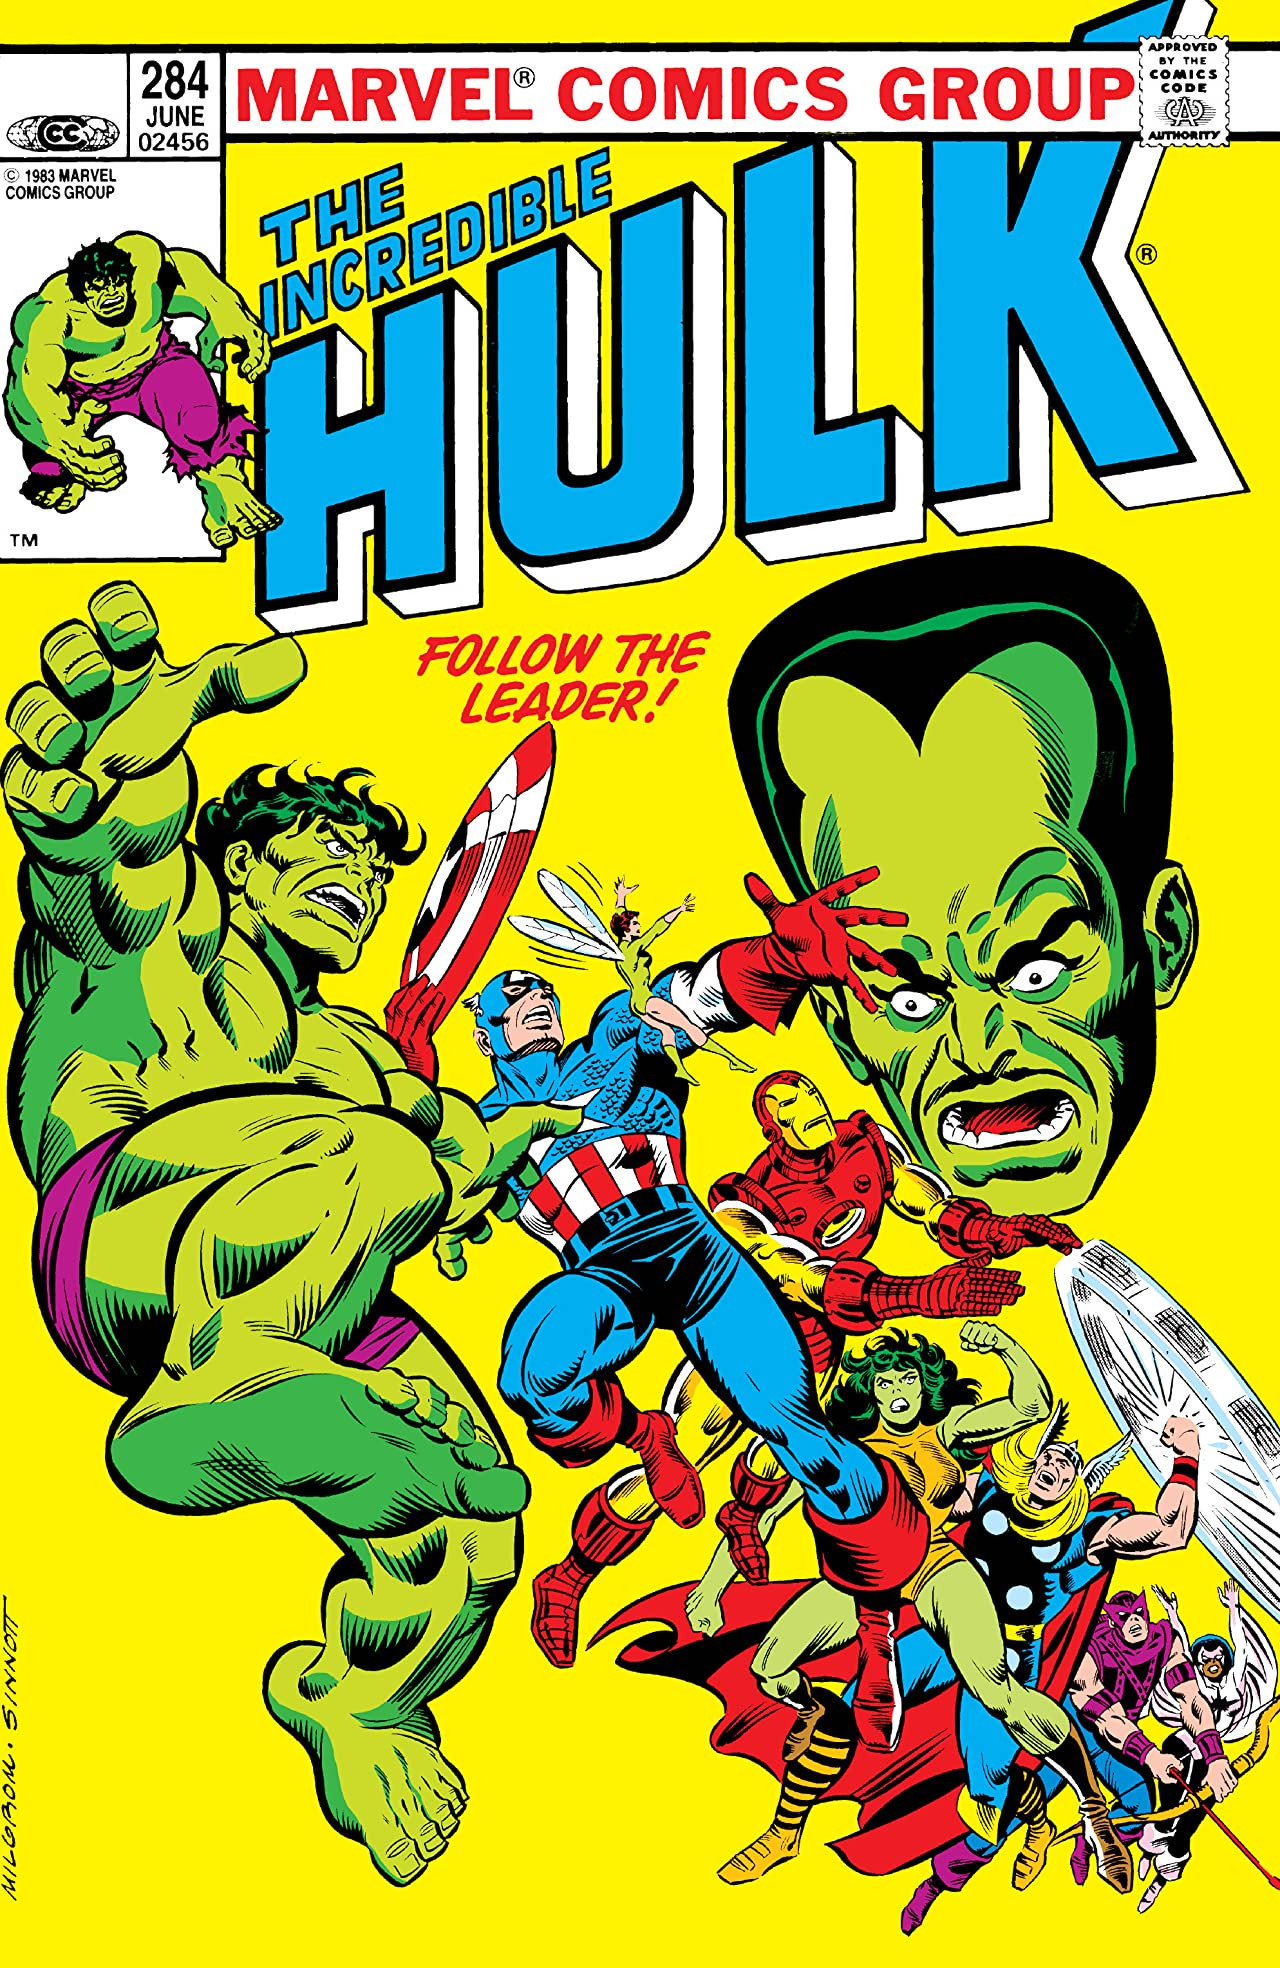 Incredible Hulk Vol 1 284.jpg